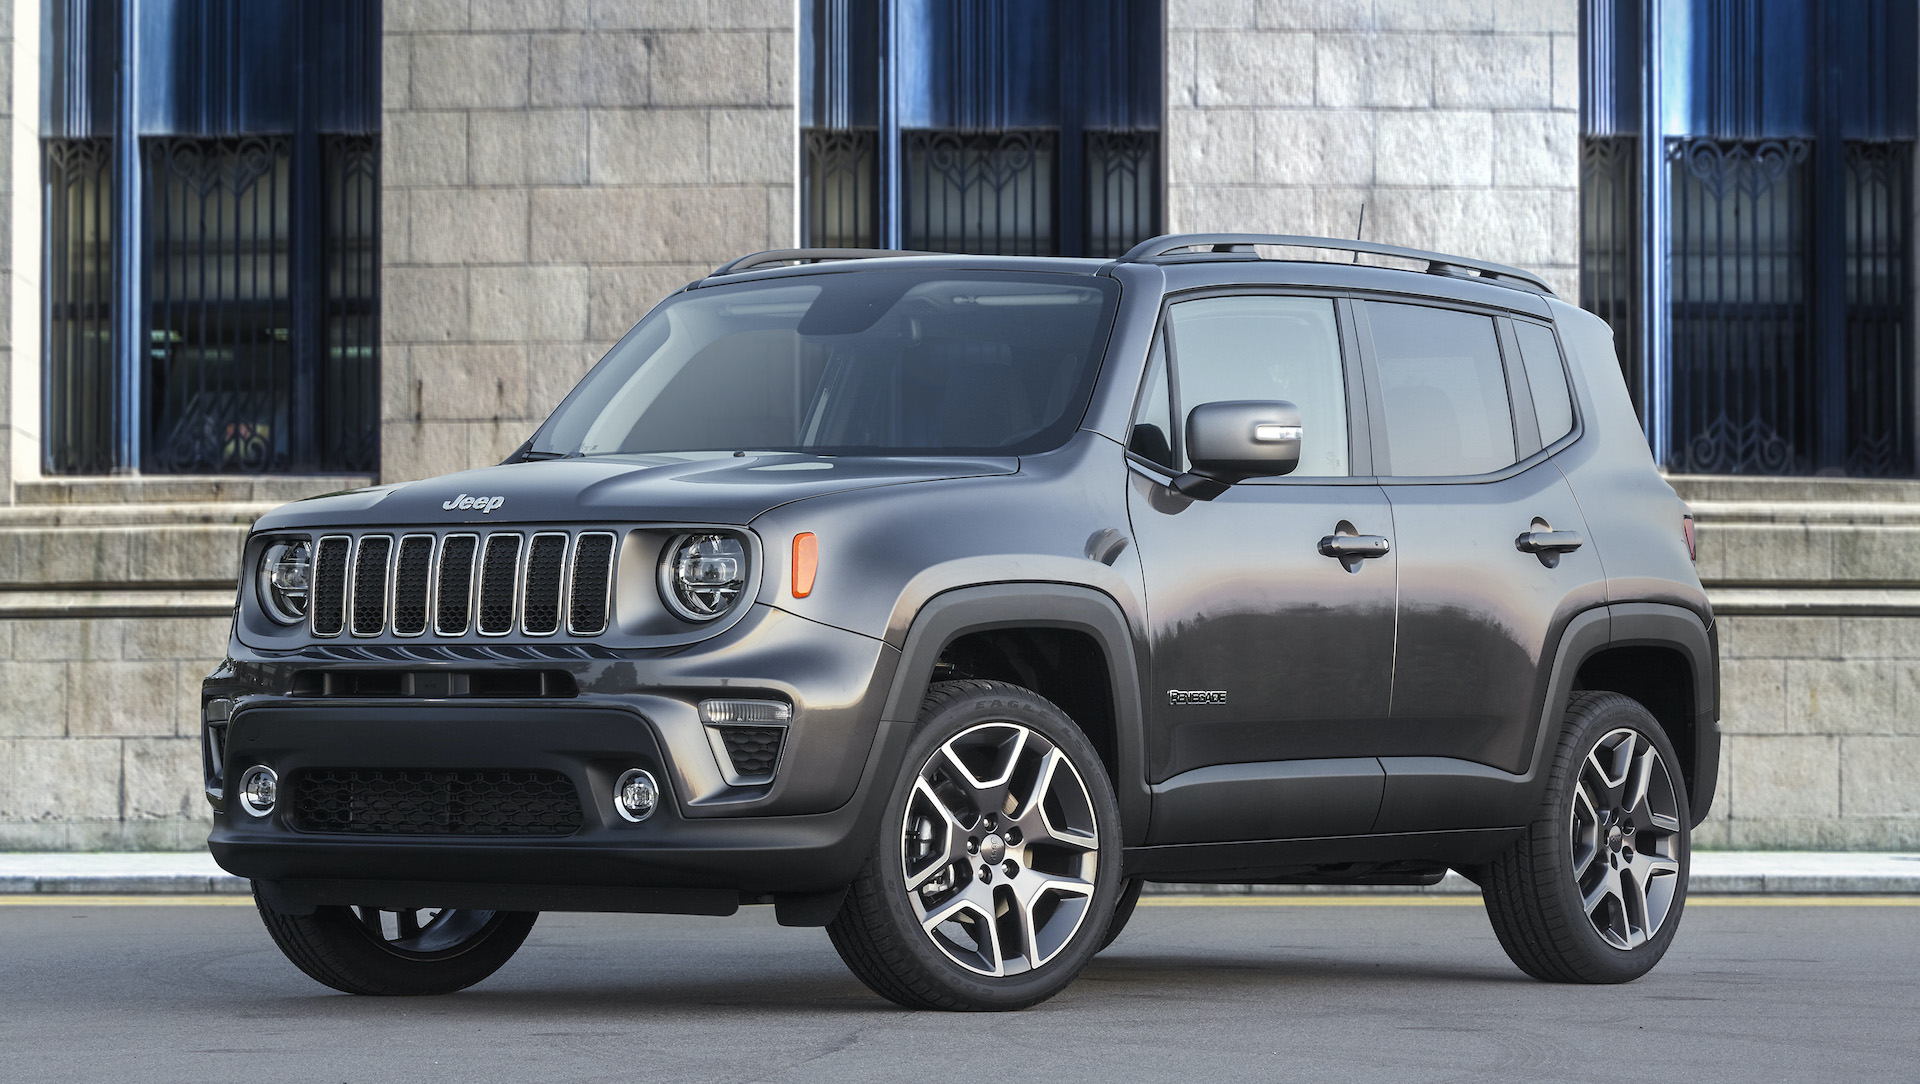 Best-Cars-to-Lease-Under-300-2020-Jeep-Renegade